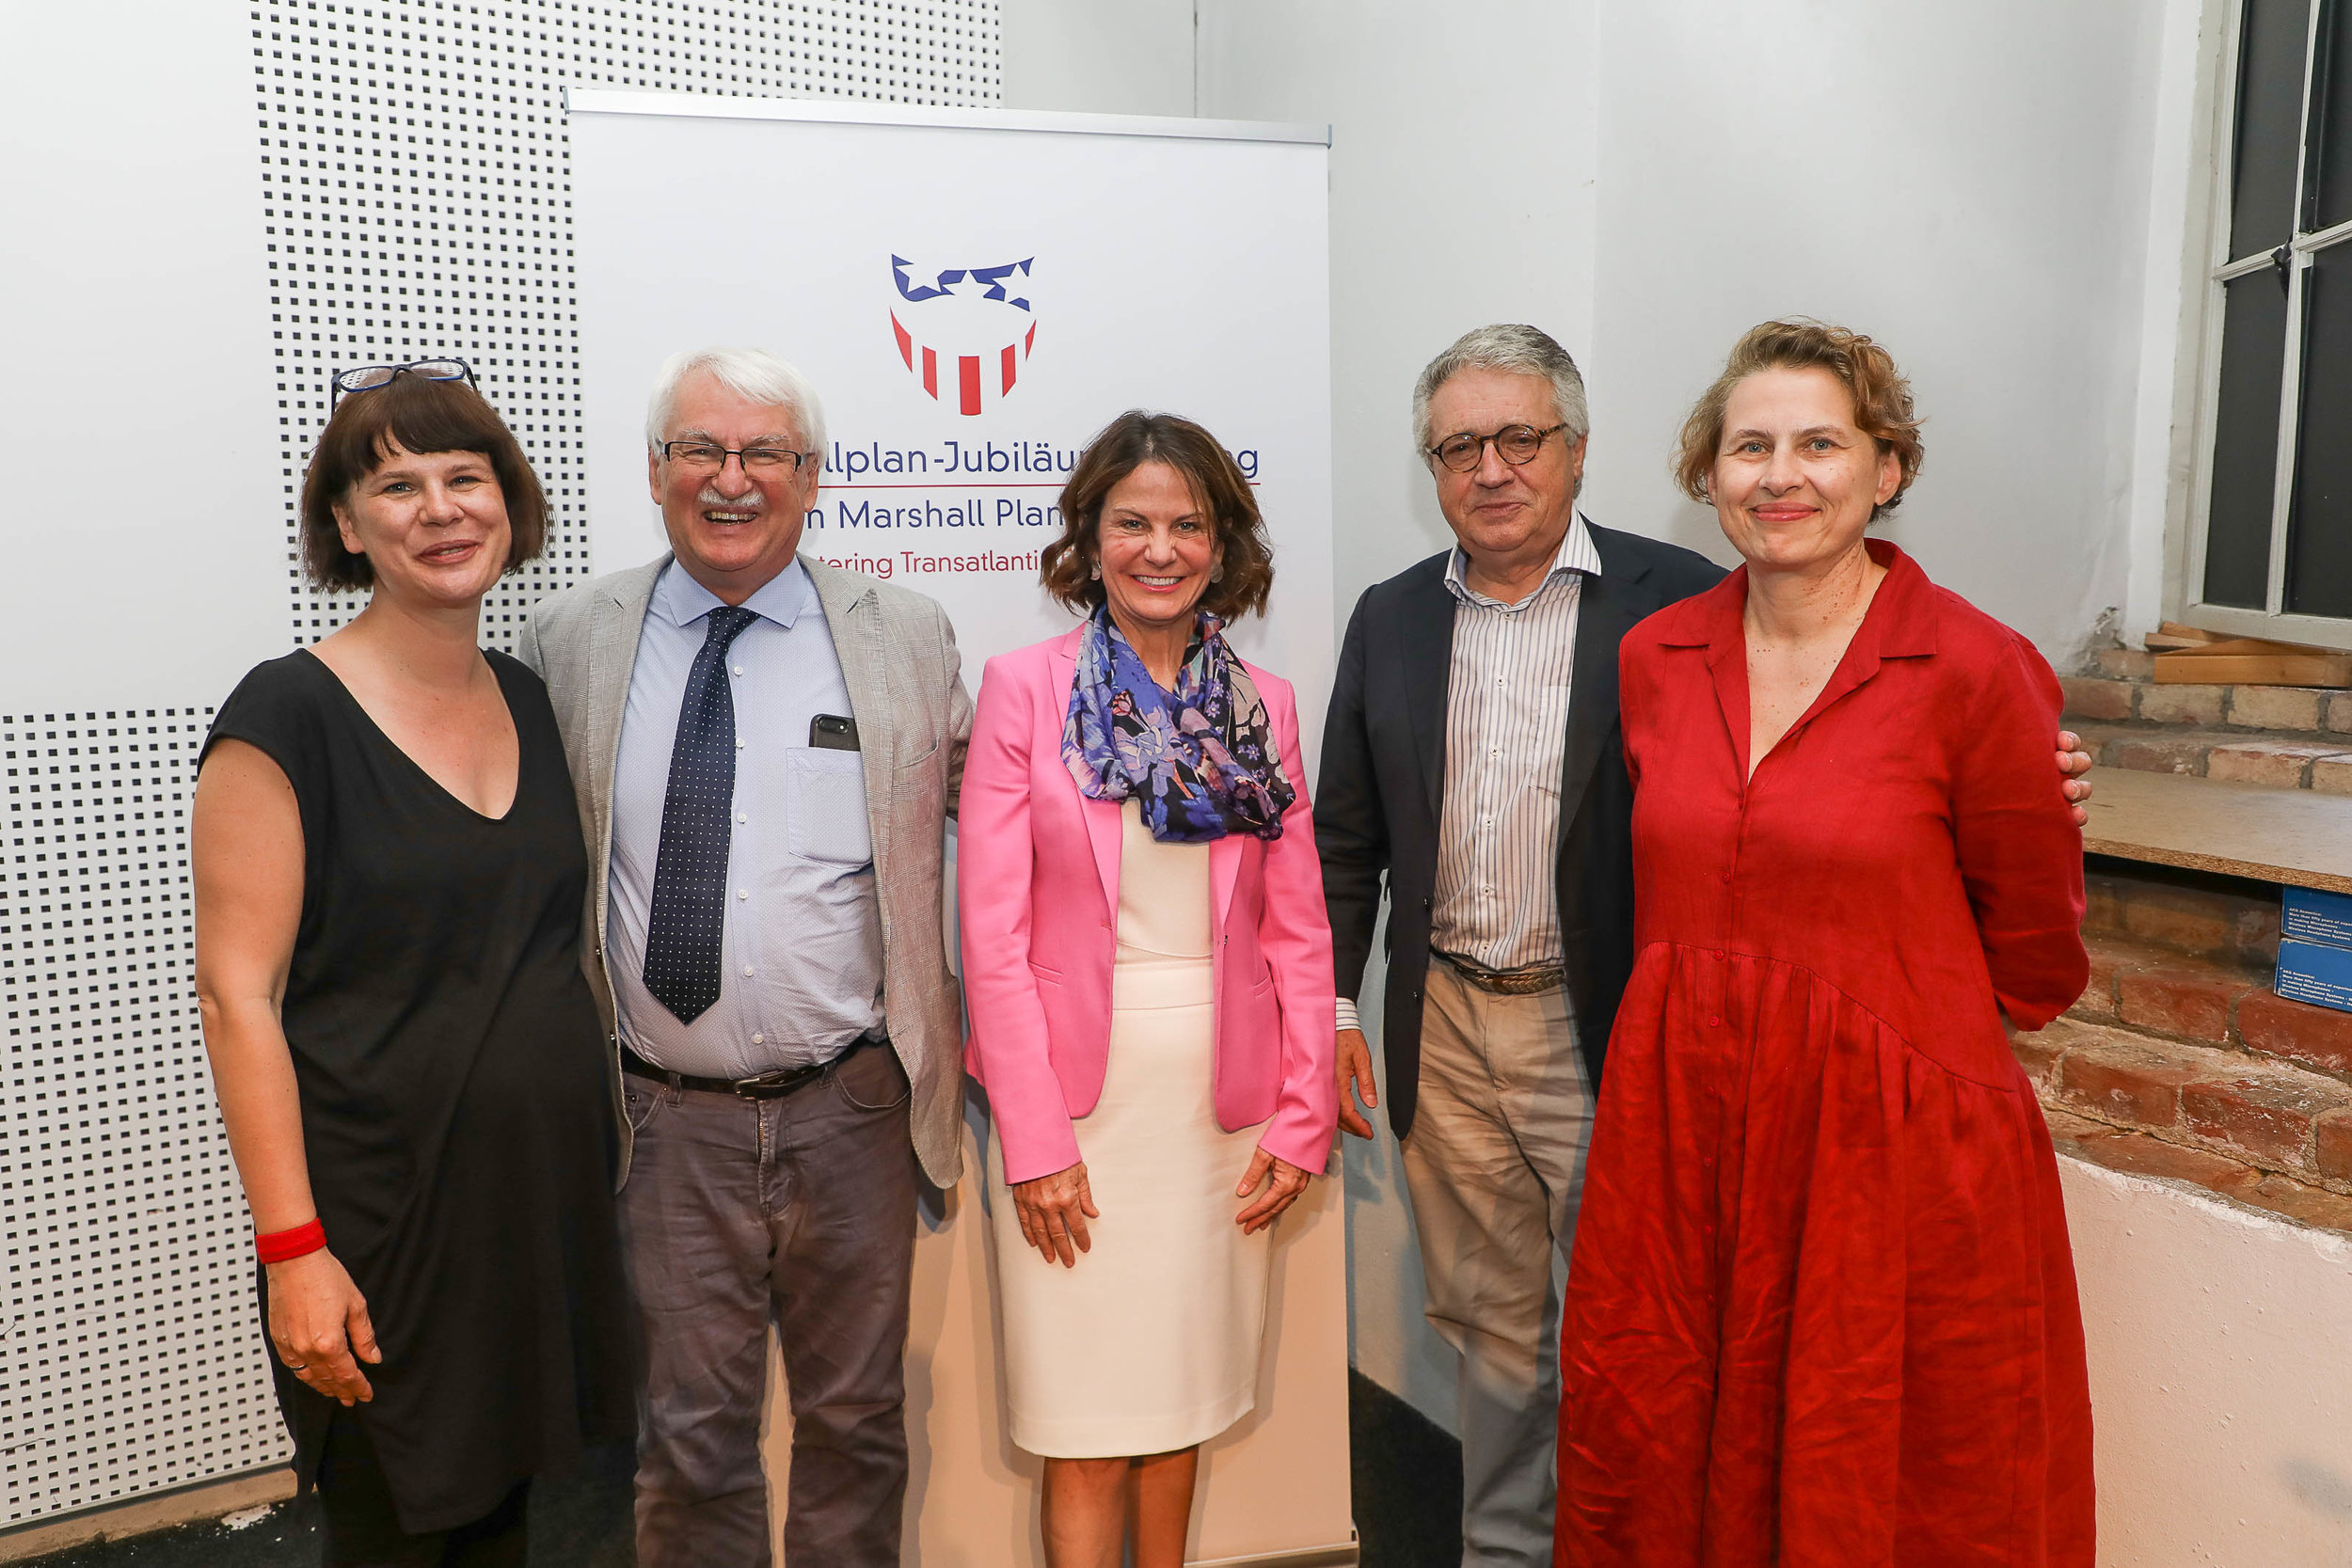 (from left) Prof.essor Alexandra Ganser, University of Vienna; Professor Günter Bischof, The University of New Orleans; Robin L. Dunningham, Minister-Counselor, Embassy of the United States in Austria, Dr. Wolfgang Petritsch, President, Austrian Marshall Plan Foundation; and Dr. Monika Platzer, Director,  Sammlung des Architekturzentrums .